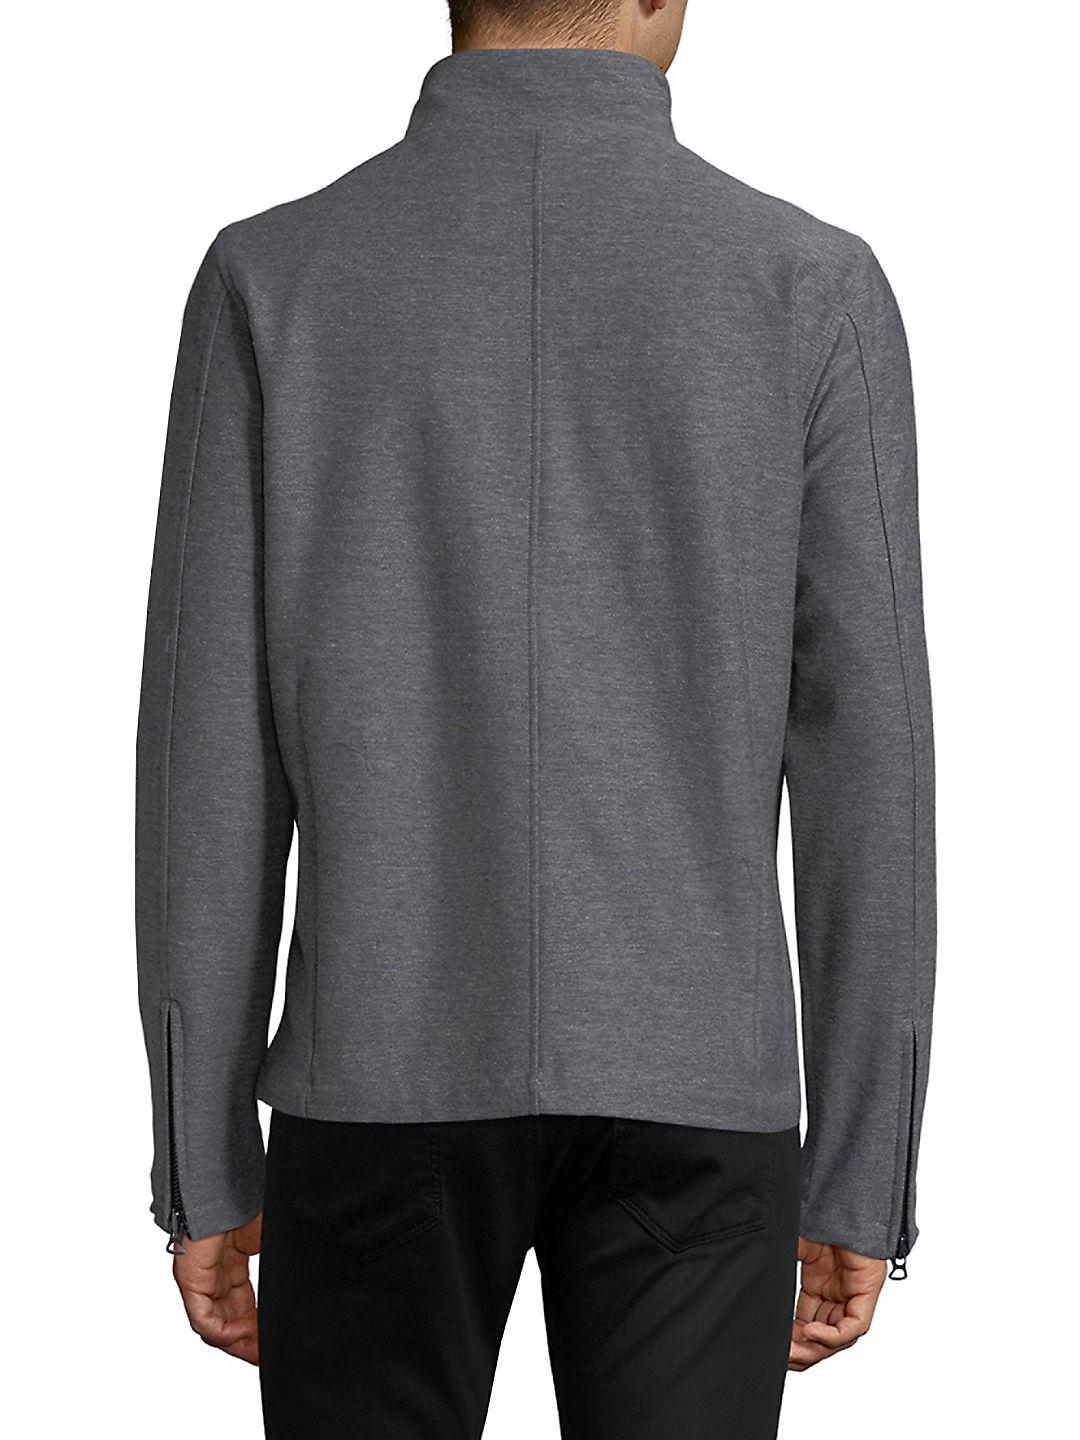 Civil Society Cotton Knit Jacket in Heather Grey (Grey) for Men